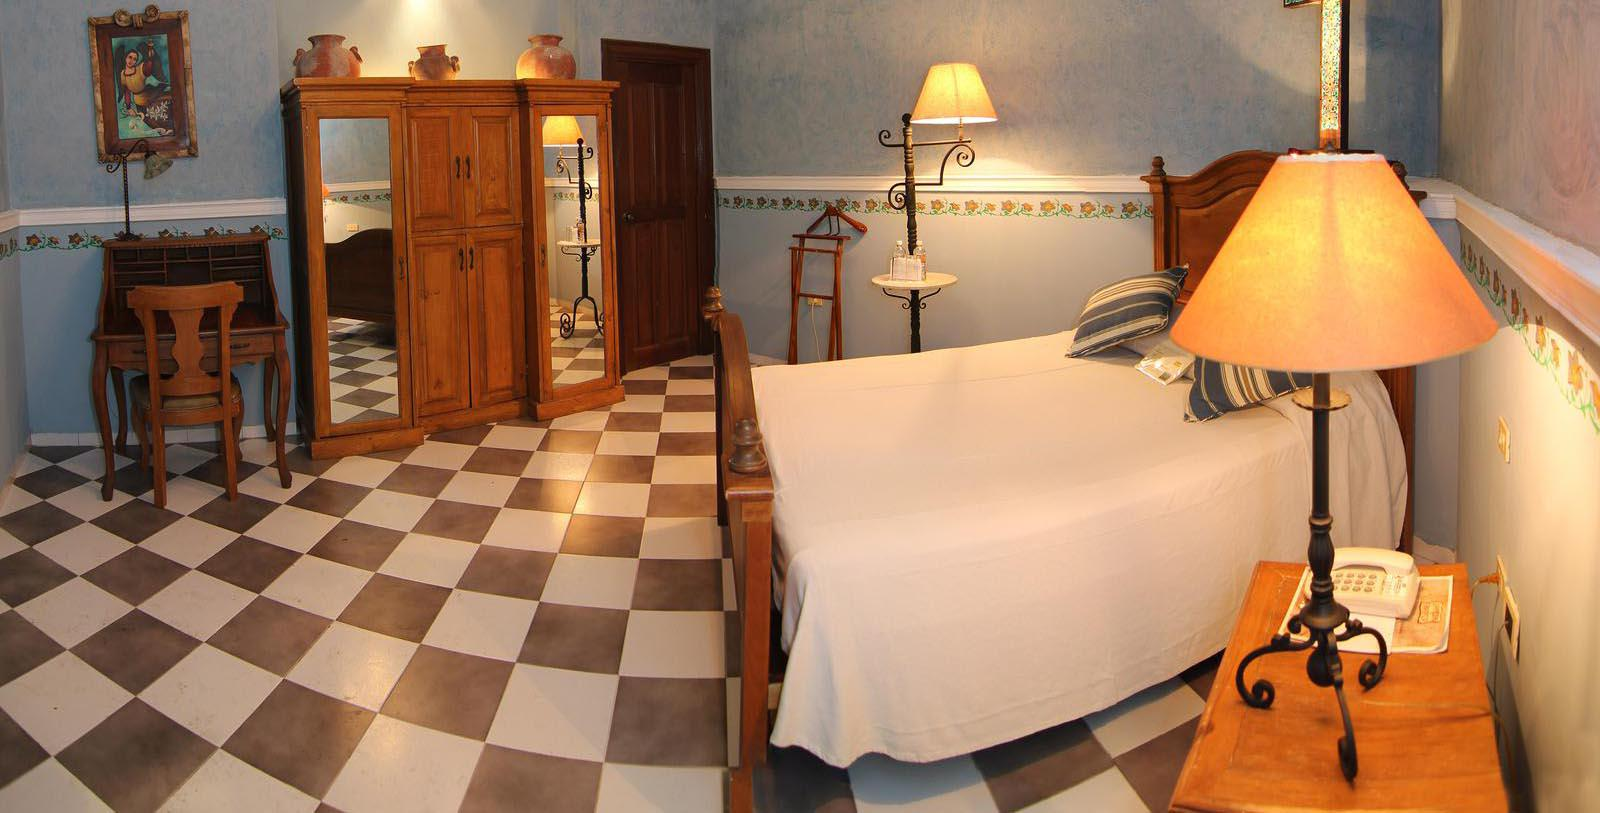 Image of Guestroom Interior La Misión de Fray Diego, 1867 Member of Historic Hotels Worldwide, in Merida, Mexico, Location